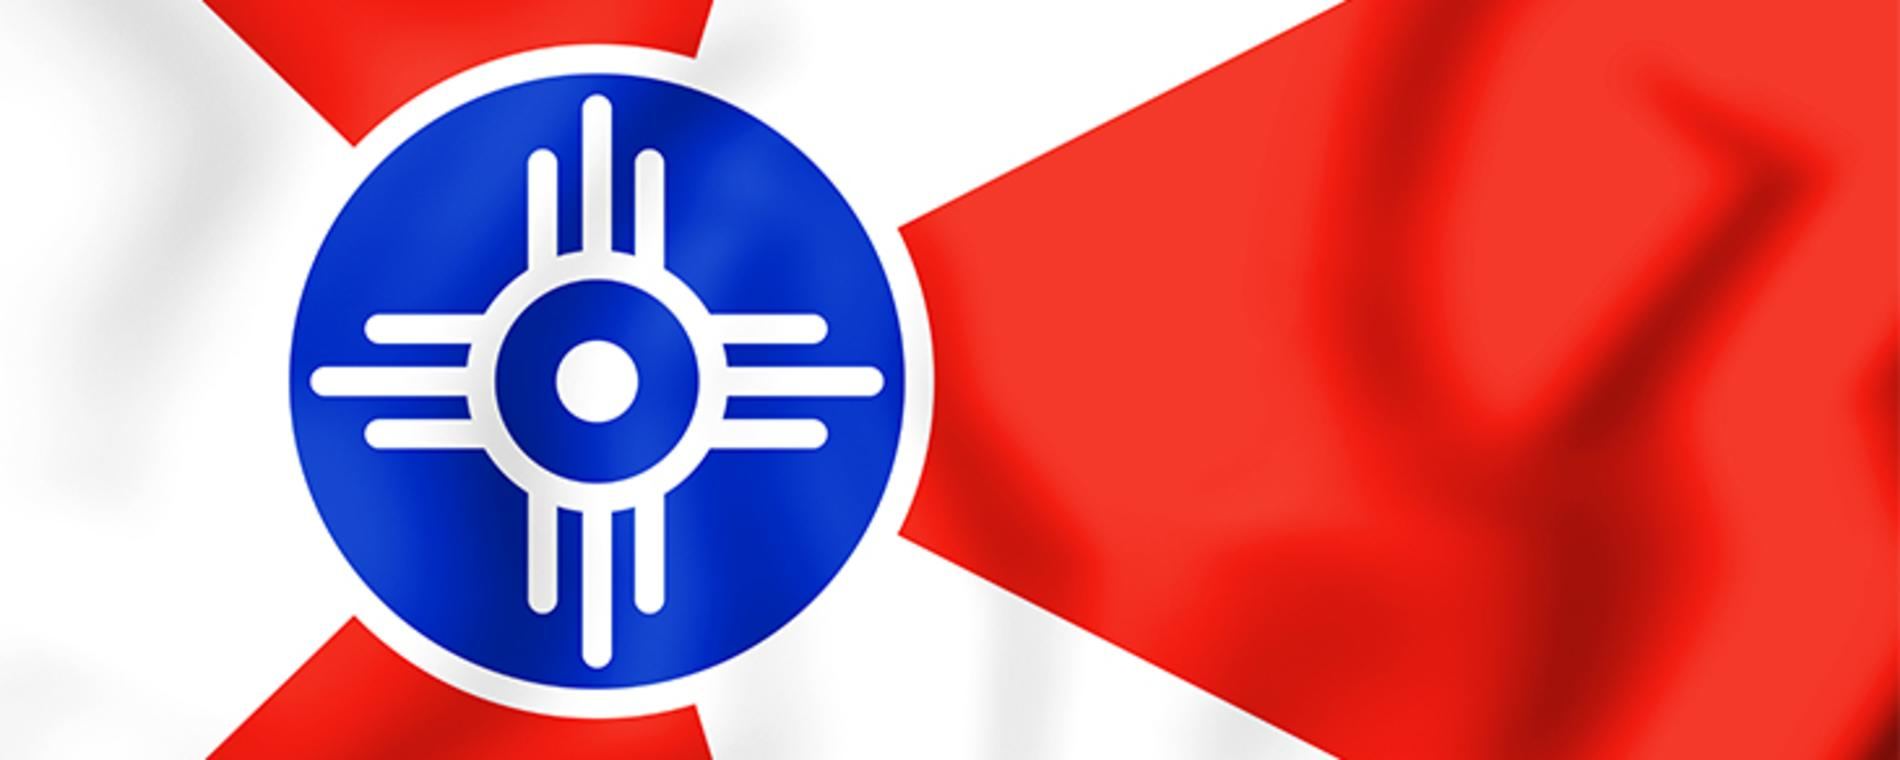 The Wichita Flag - The symbol of the city